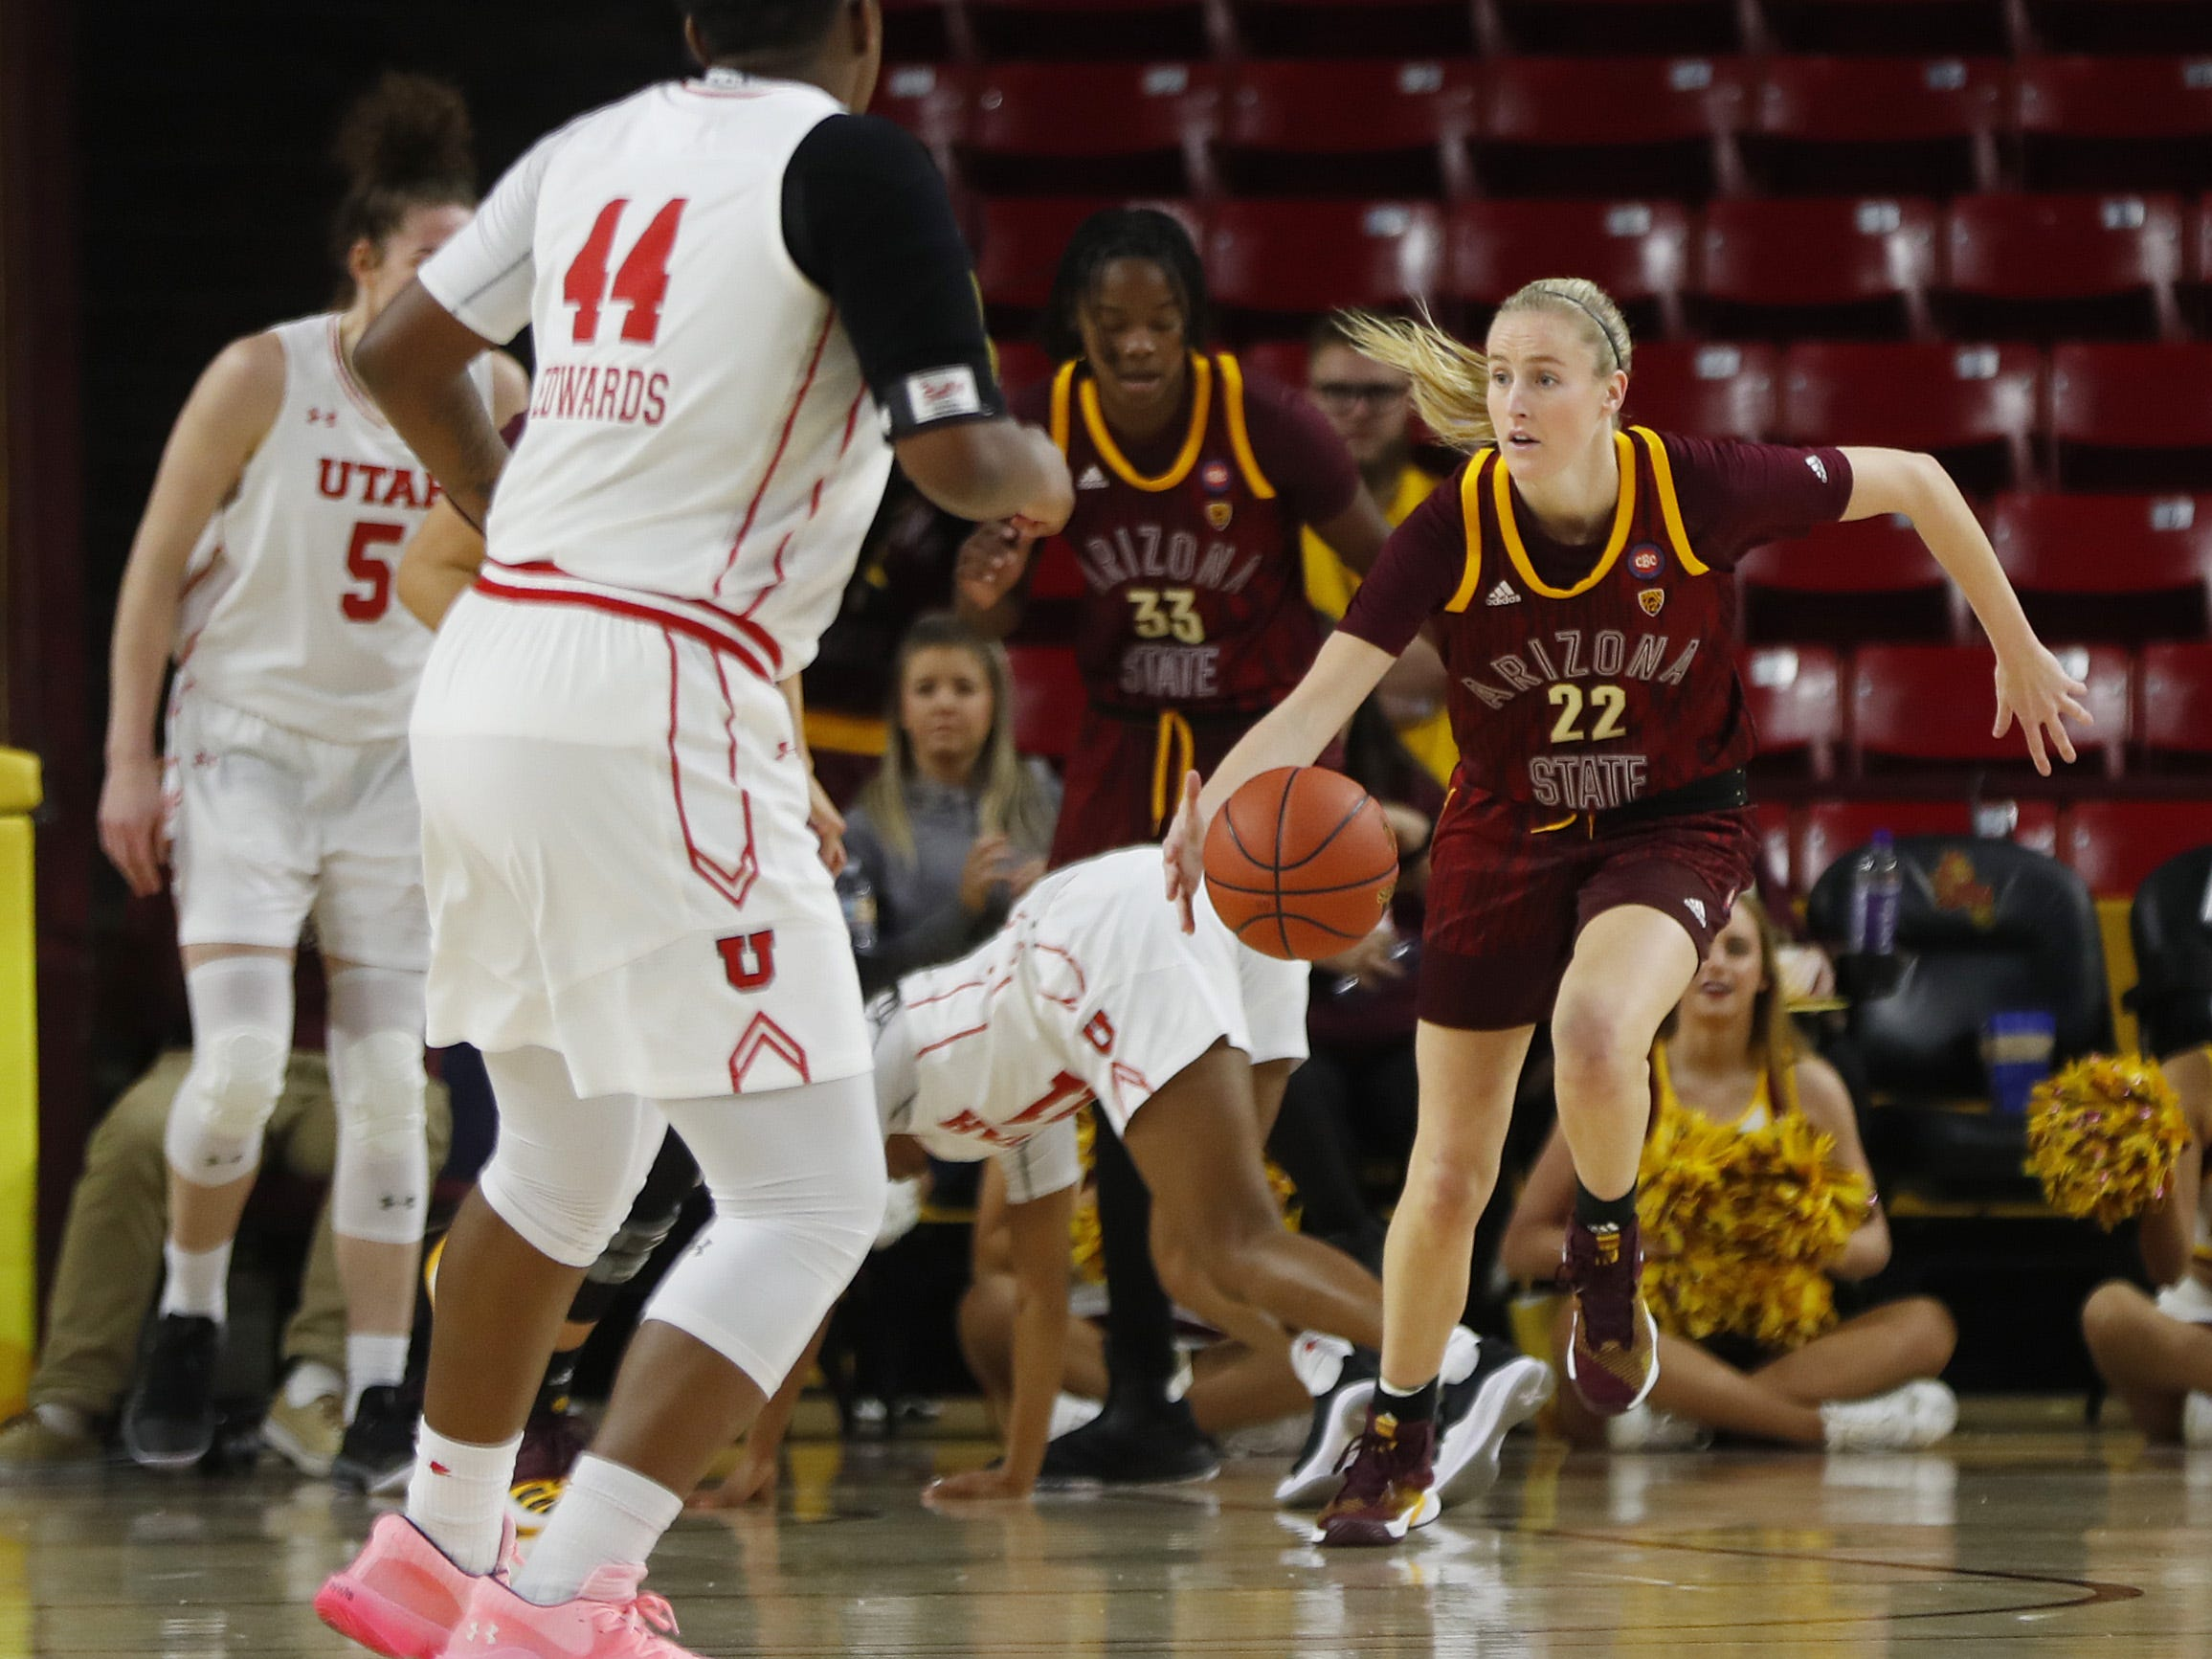 ASU's Courtney Ekmark (22) dribbles up court against Utah during the first half at Wells Fargo Arena in Tempe, Ariz. on February 17, 2019.